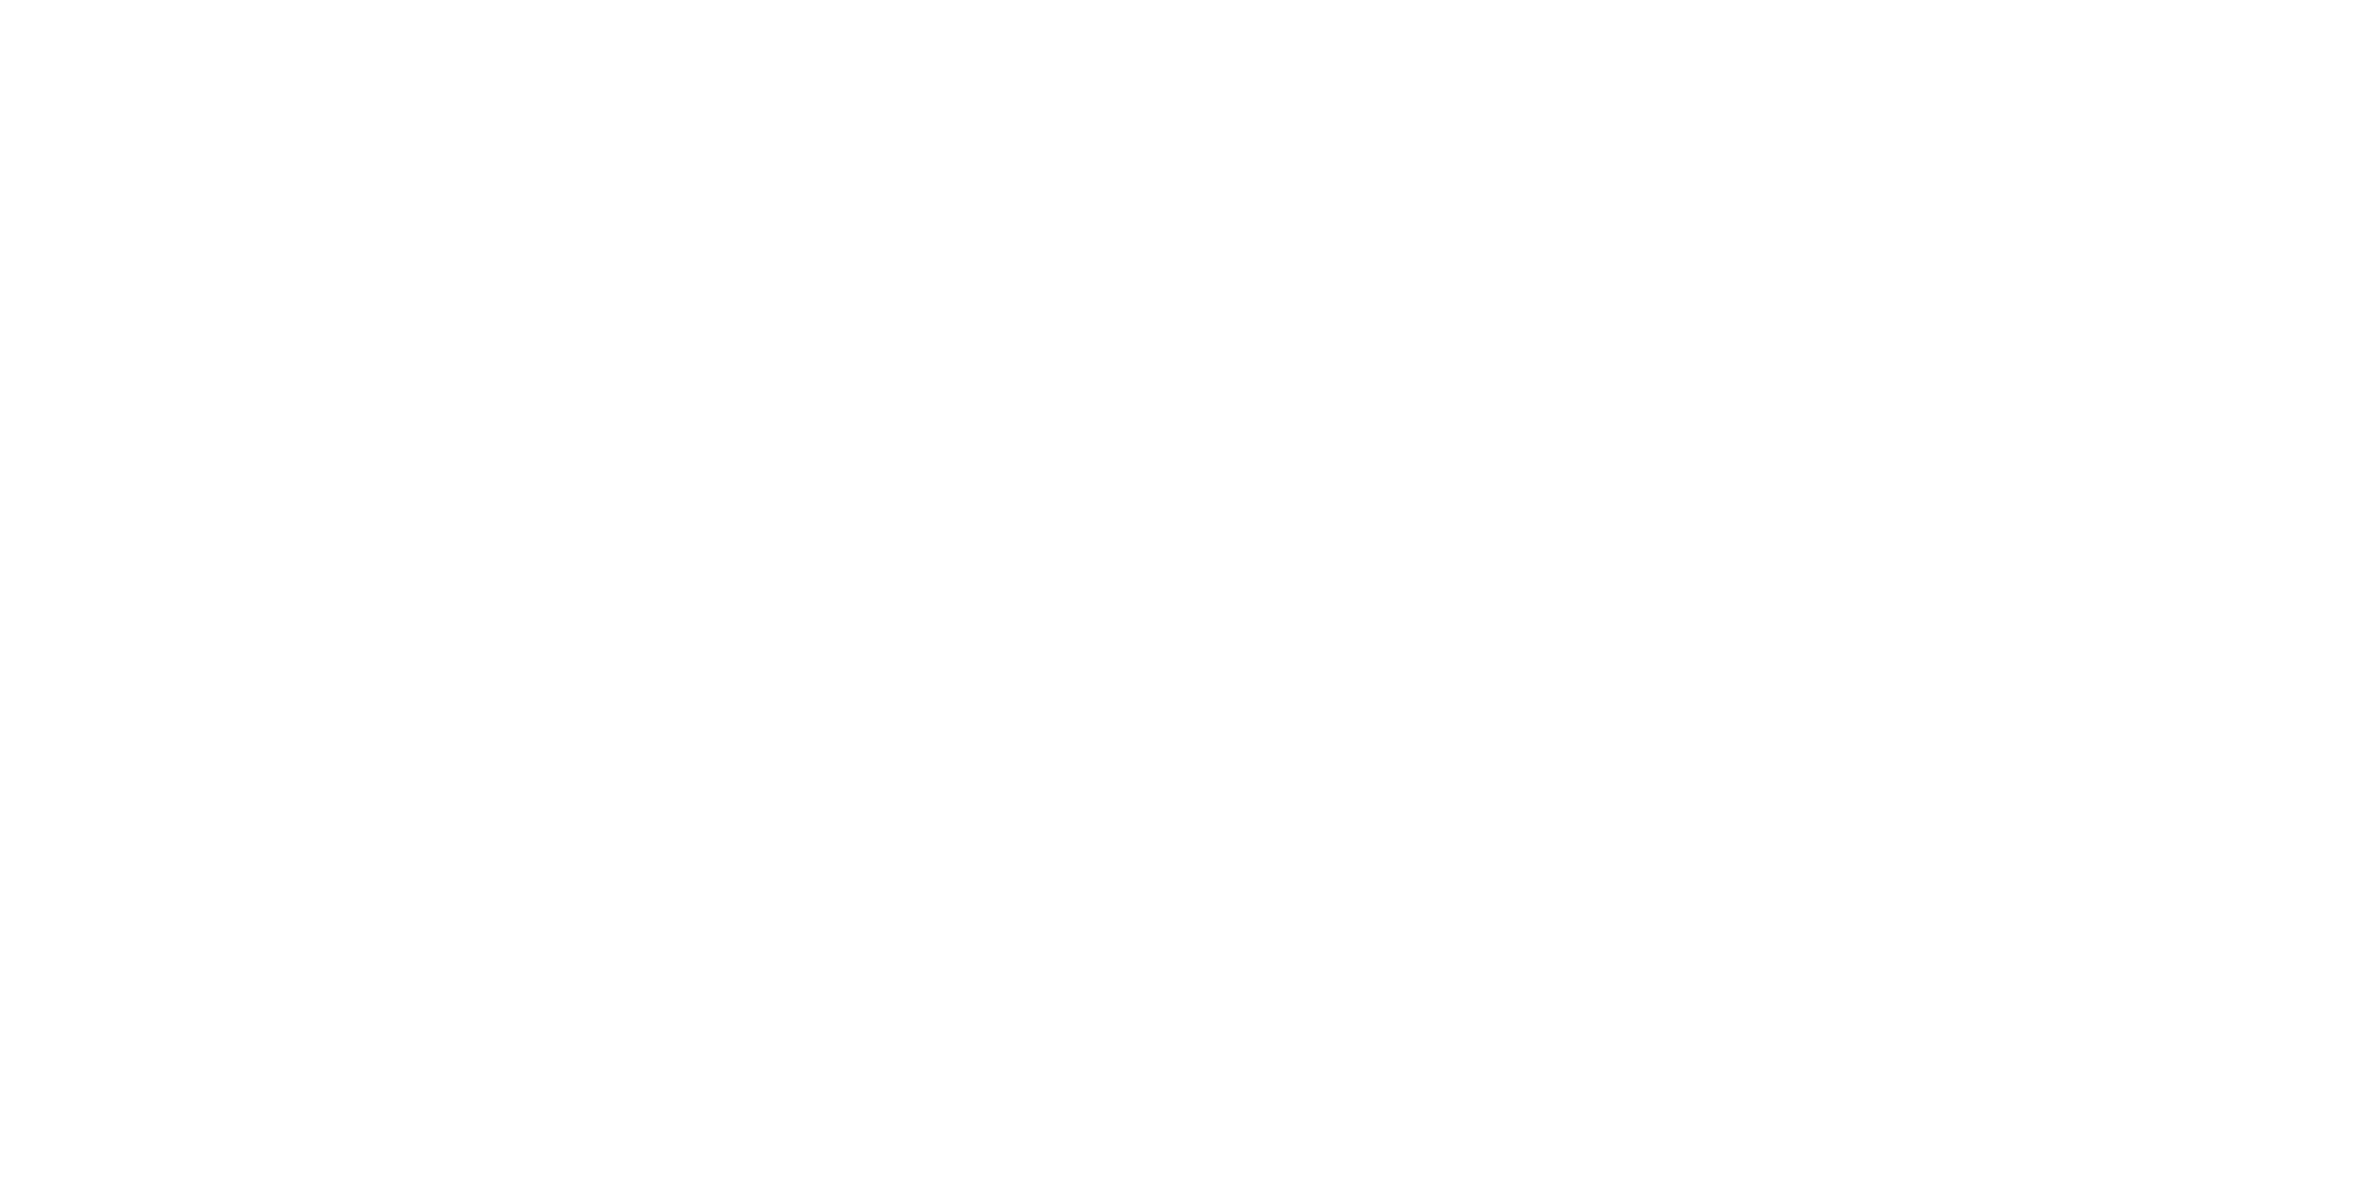 The Millowners Arms